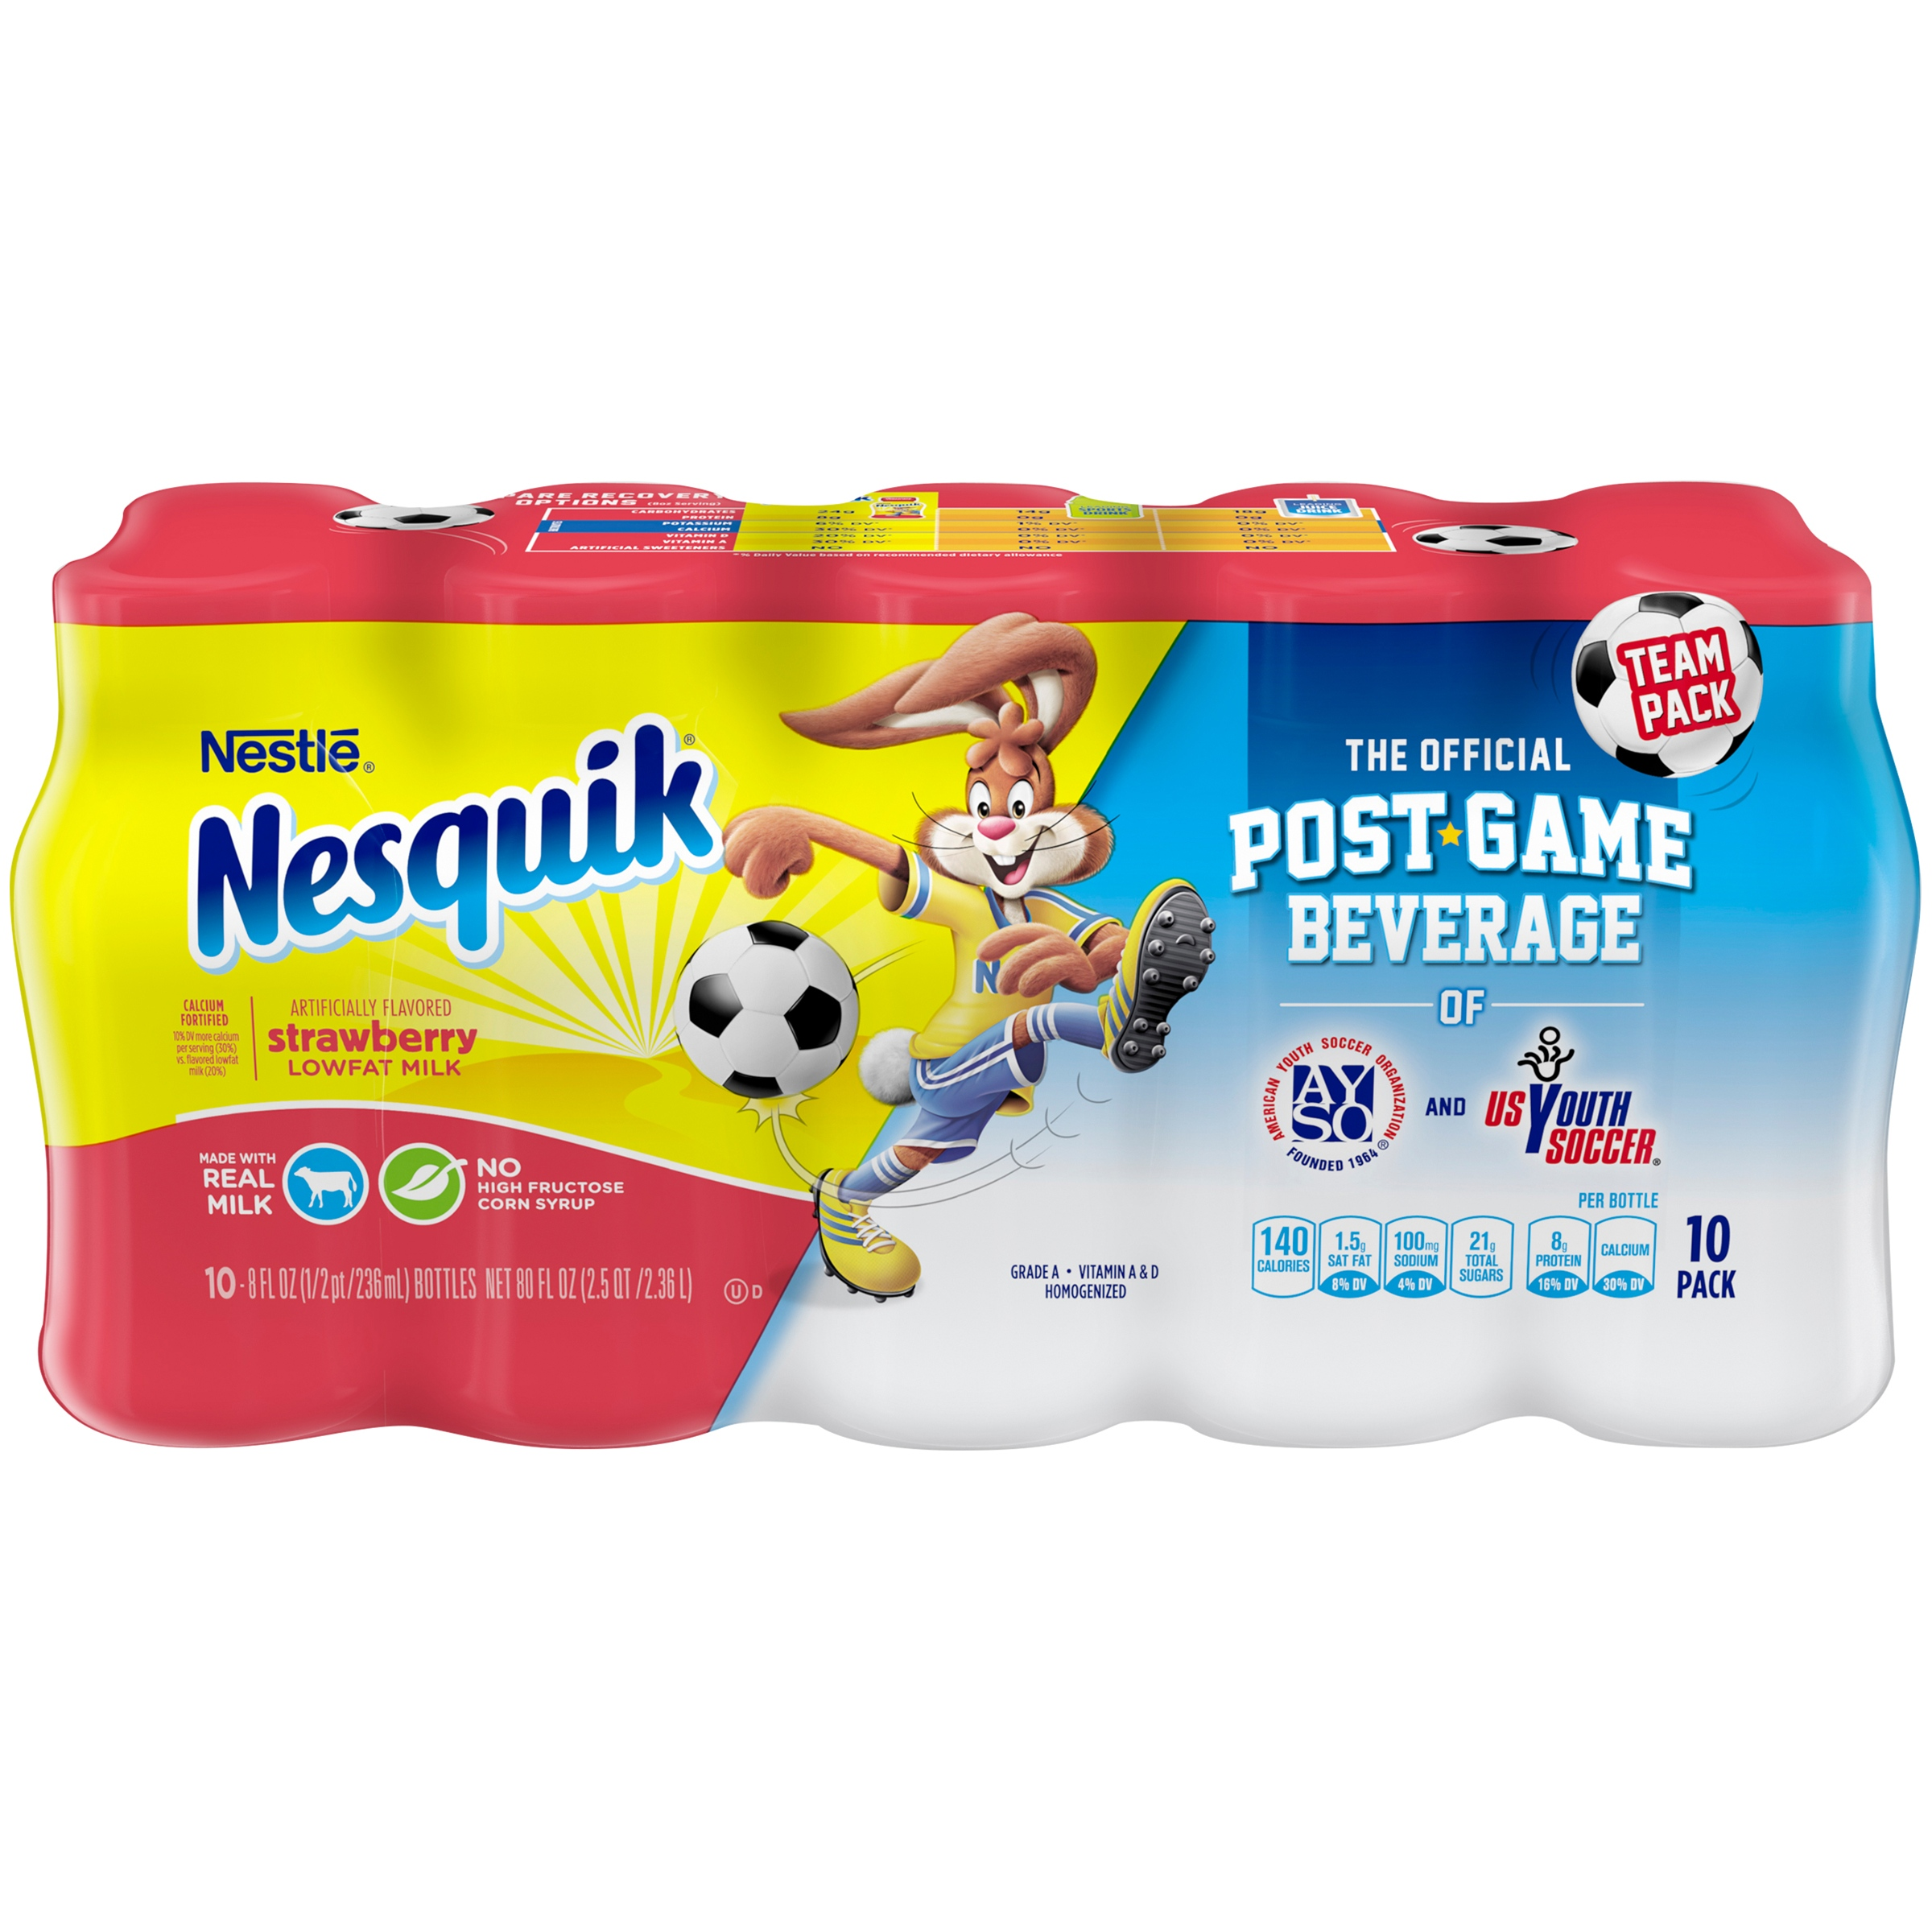 NESTLE NESQUIK Strawberry Flavored 1% Low Fat Milk 10-8 fl. oz. Plastic Bottle